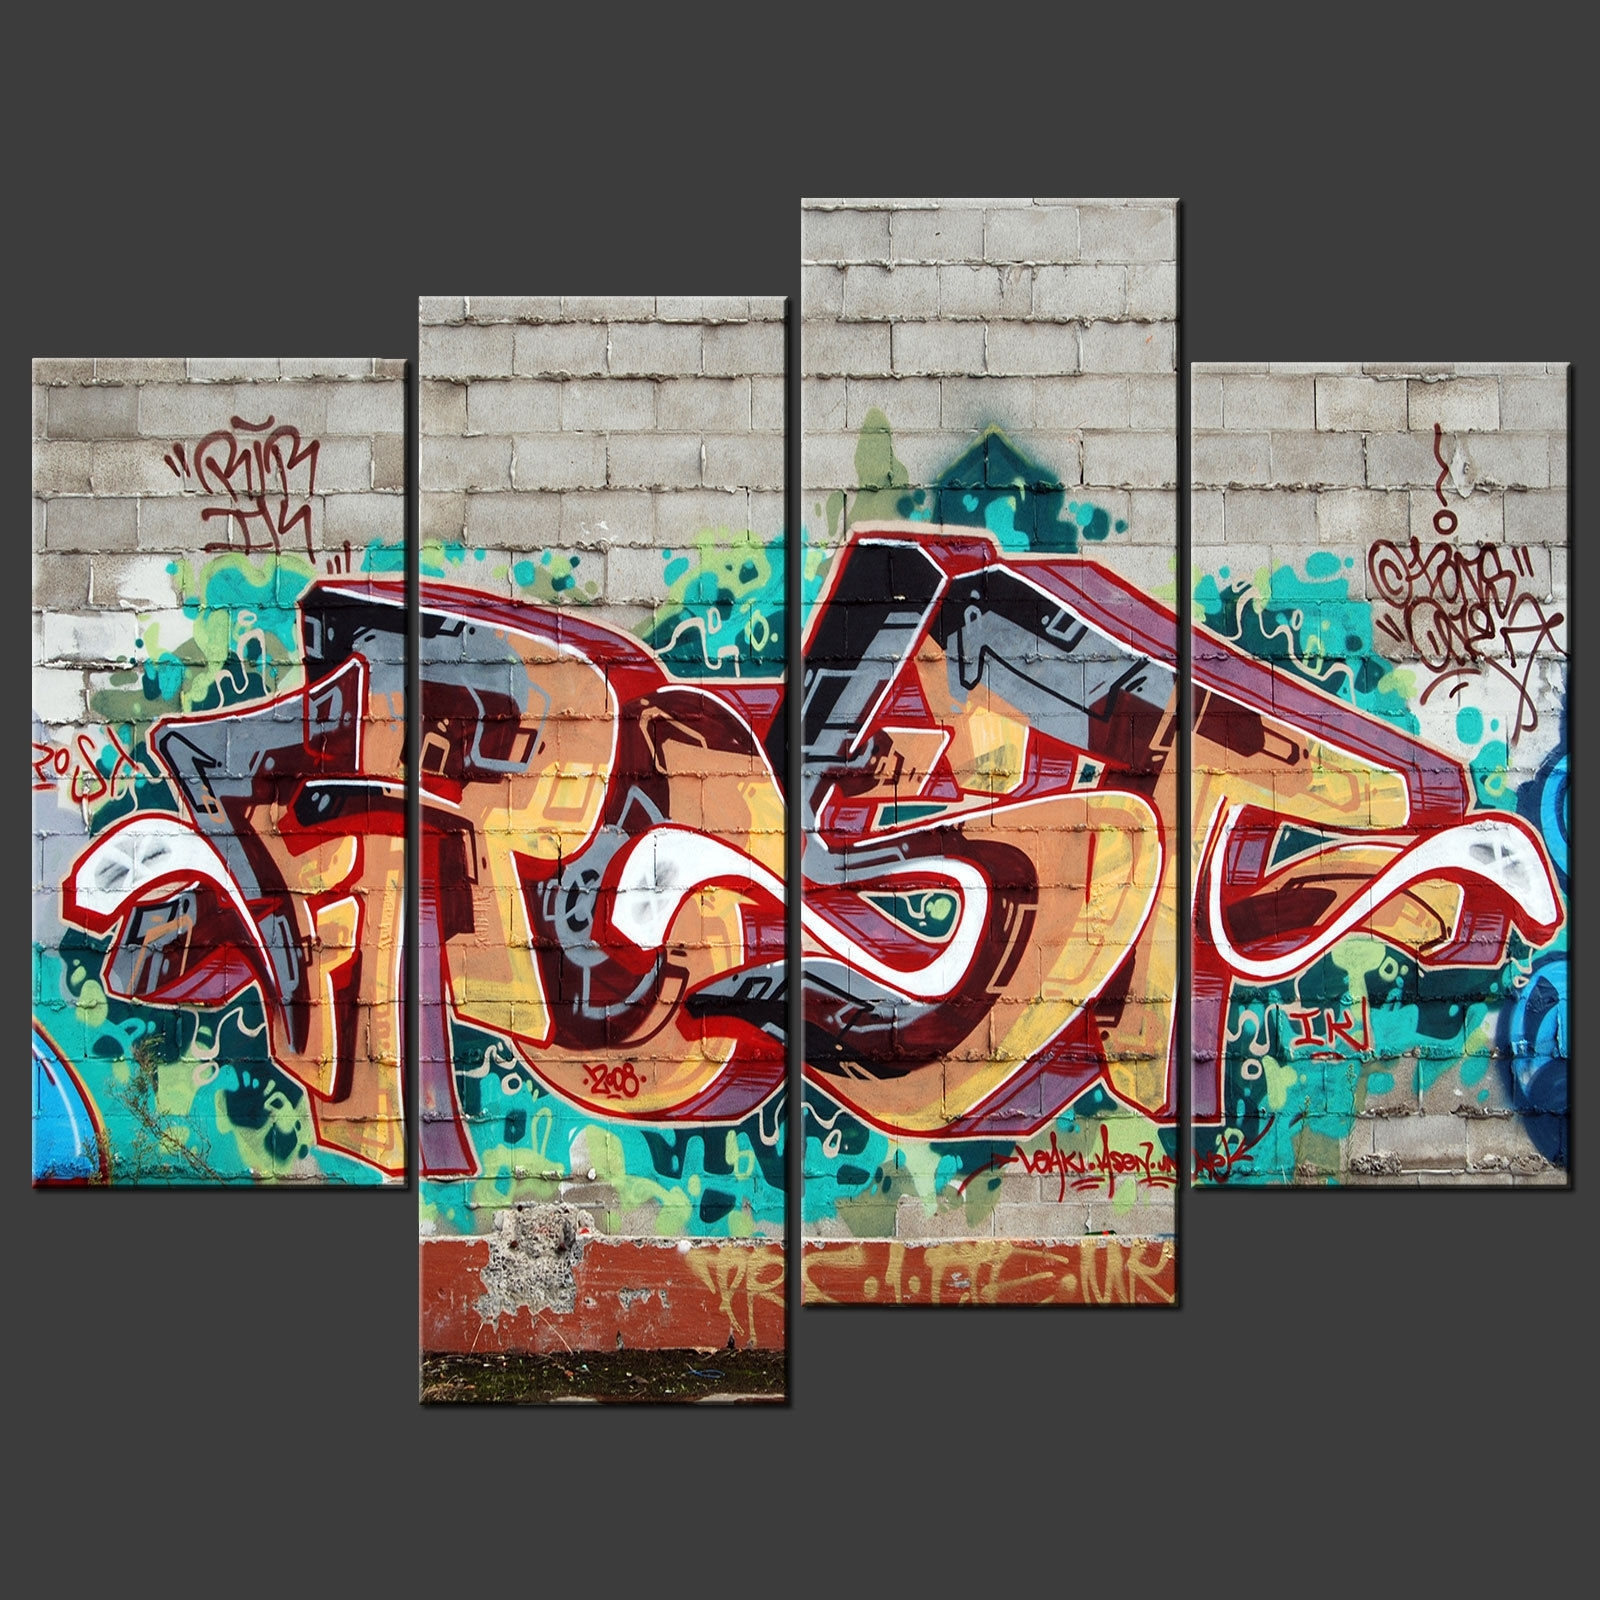 Wall Art Decor: Multi Panel Graffiti Canvas Wall Art Awesome Regarding Newest Abstract Graffiti Wall Art (View 20 of 20)